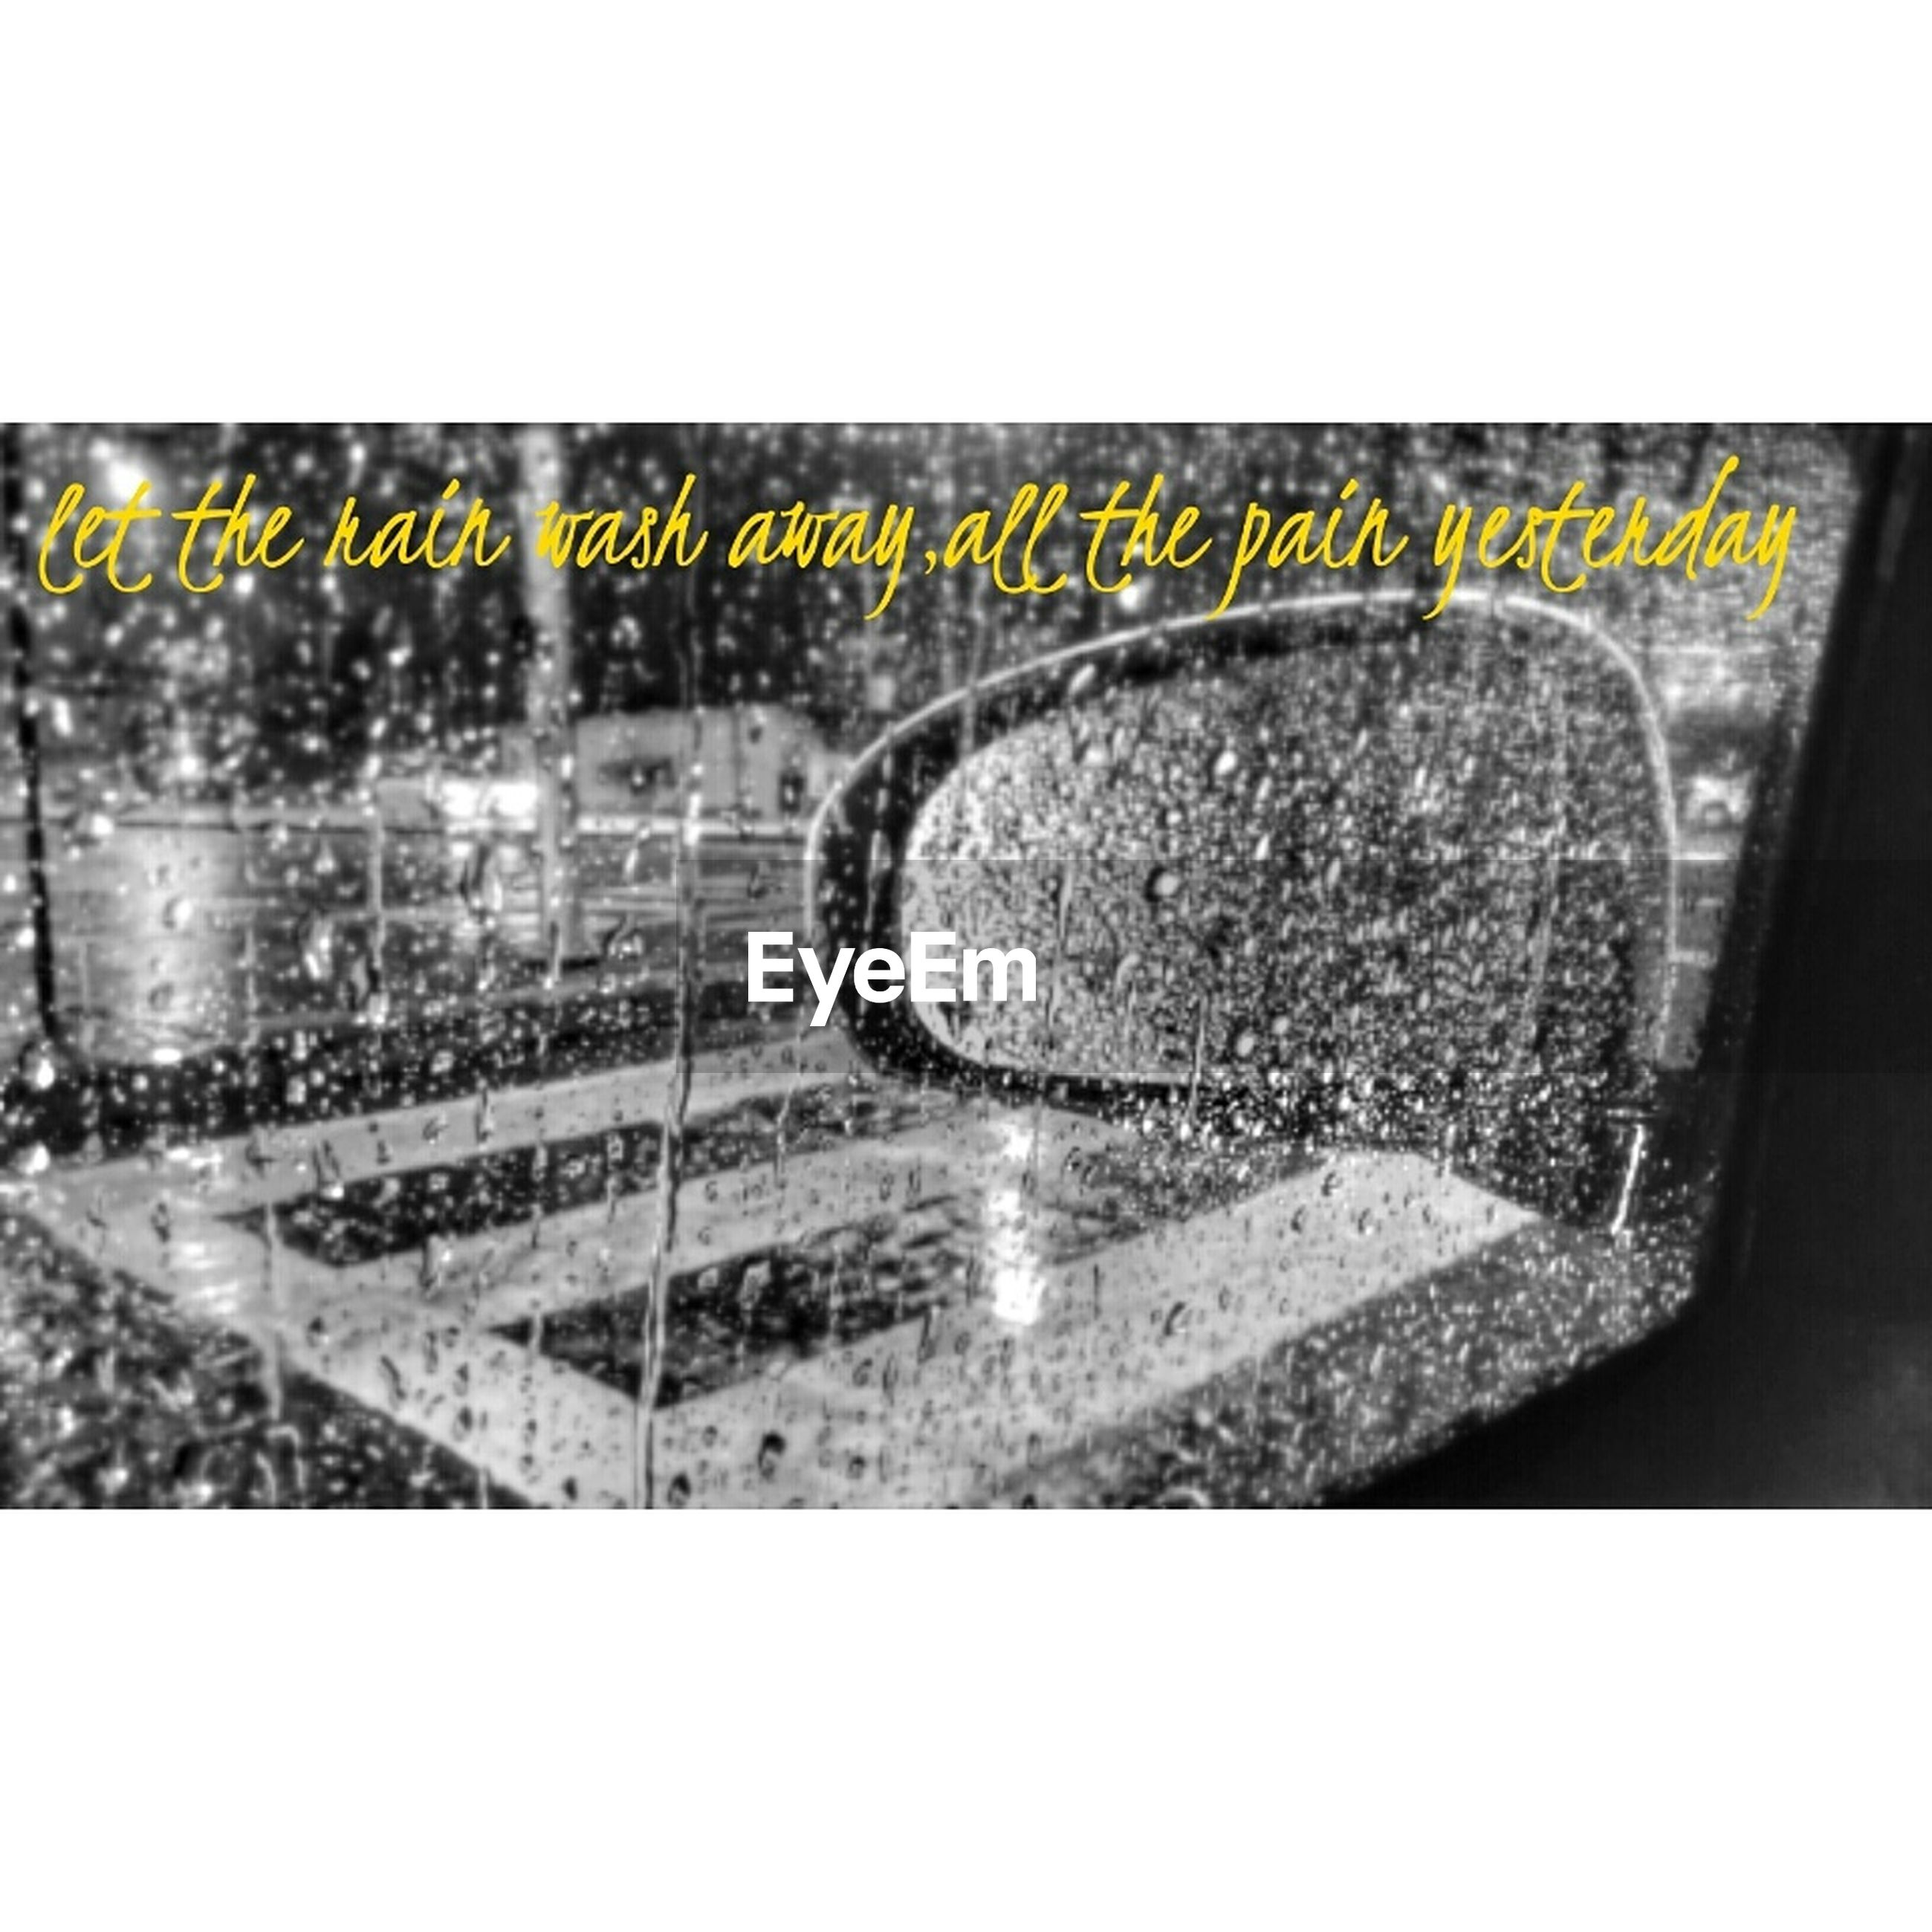 transfer print, auto post production filter, glass - material, indoors, close-up, transparent, text, pattern, wet, water, window, metal, built structure, no people, communication, architecture, transportation, reflection, geometric shape, design